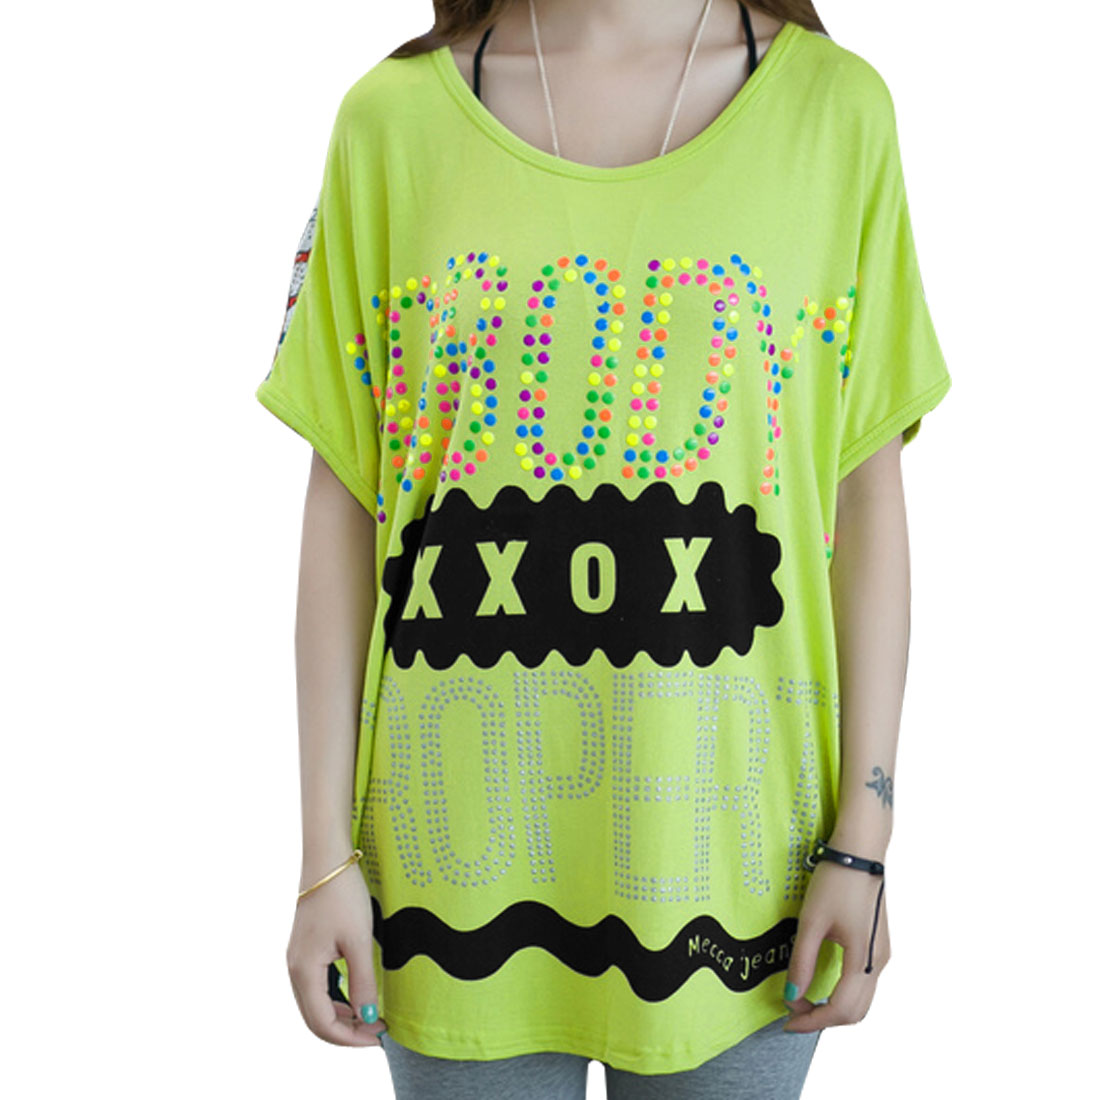 Ladies Chic Short Batwing Sleeve Studded Letters Design Apple Green Shirt M